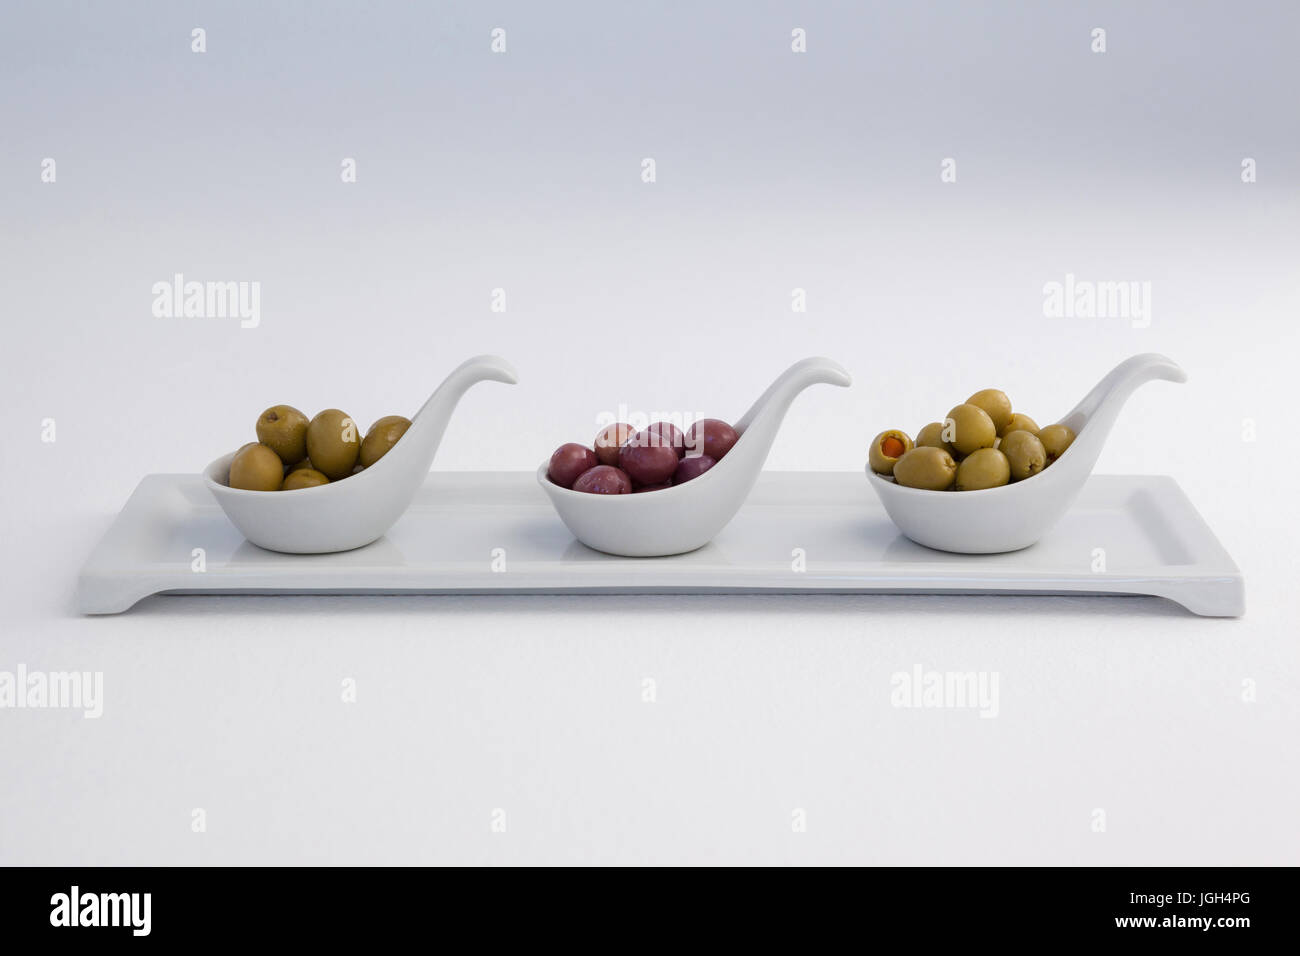 Various olives in container on tray against white background - Stock Image